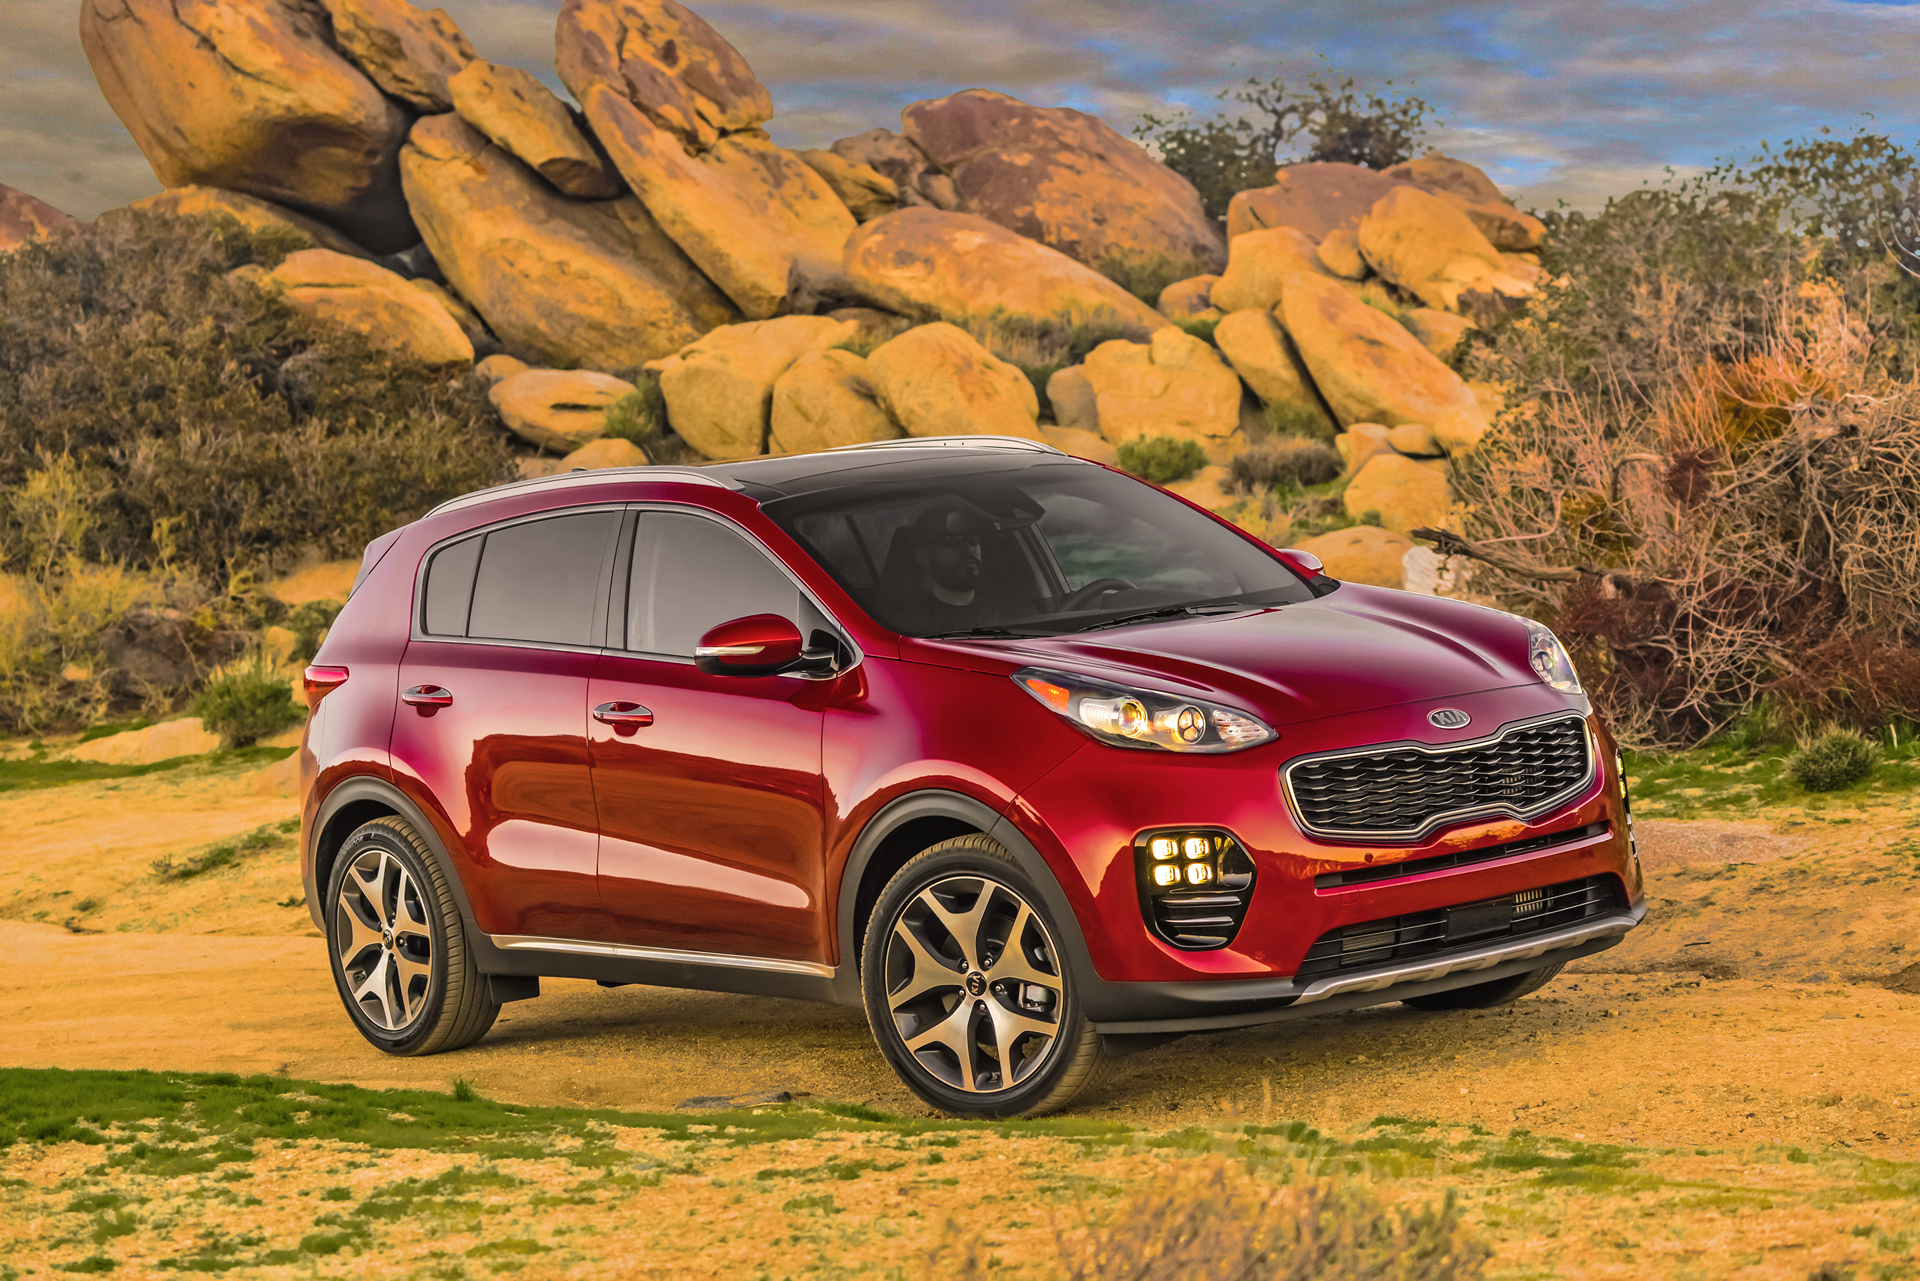 2017 kia sportage preview carrrs auto portal. Black Bedroom Furniture Sets. Home Design Ideas